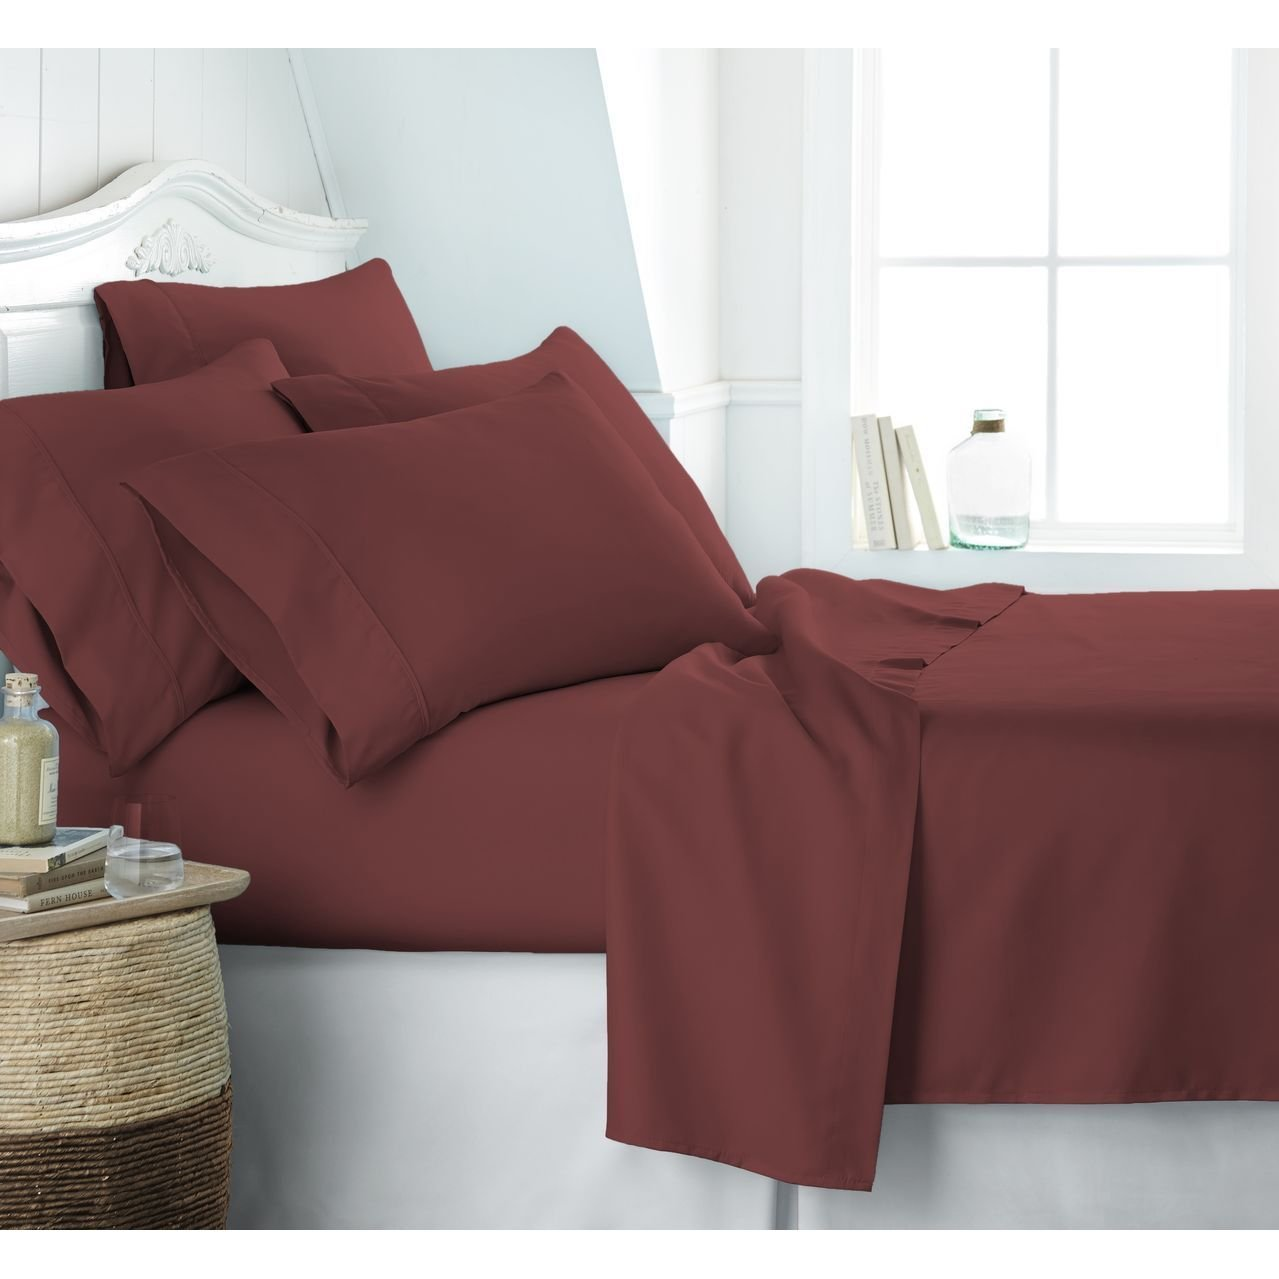 Egyptian Luxury 1800 Hotel Collection Bed Sheet Set